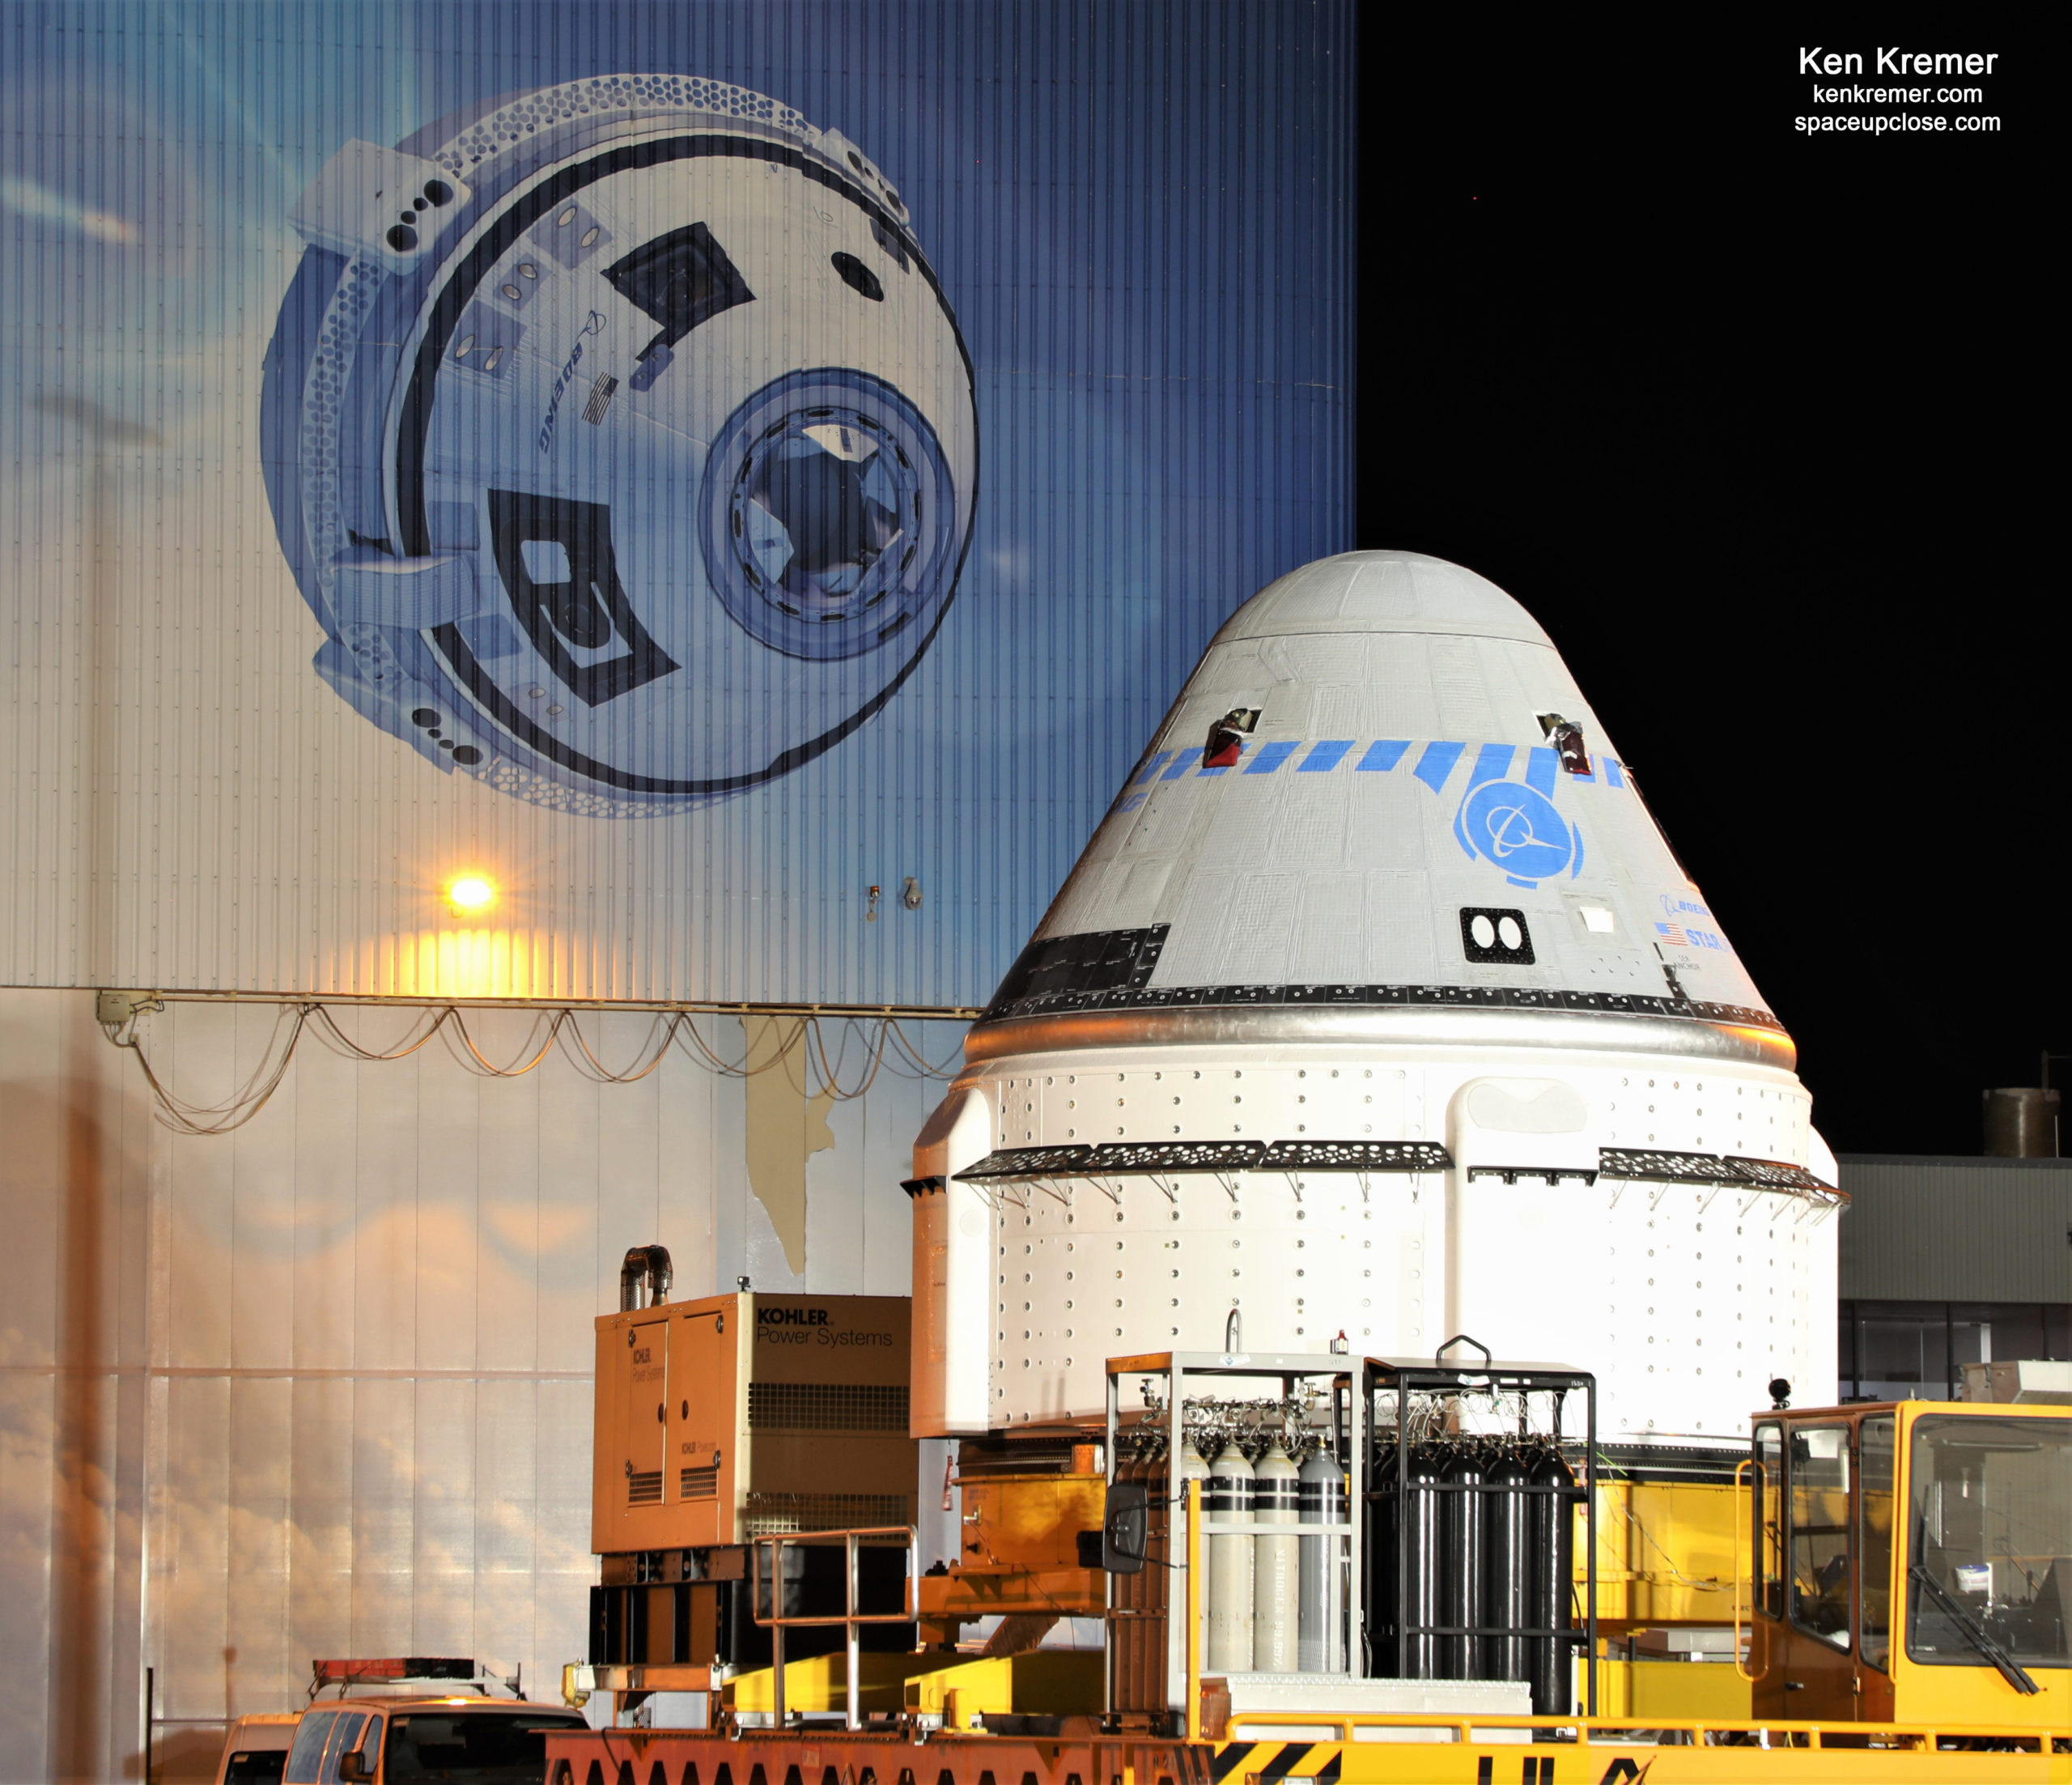 Boeing Starliner Rolls Out to Launch Pad and Mated on ULA Atlas V Rocket for Redo Test Flight to ISS: Photos